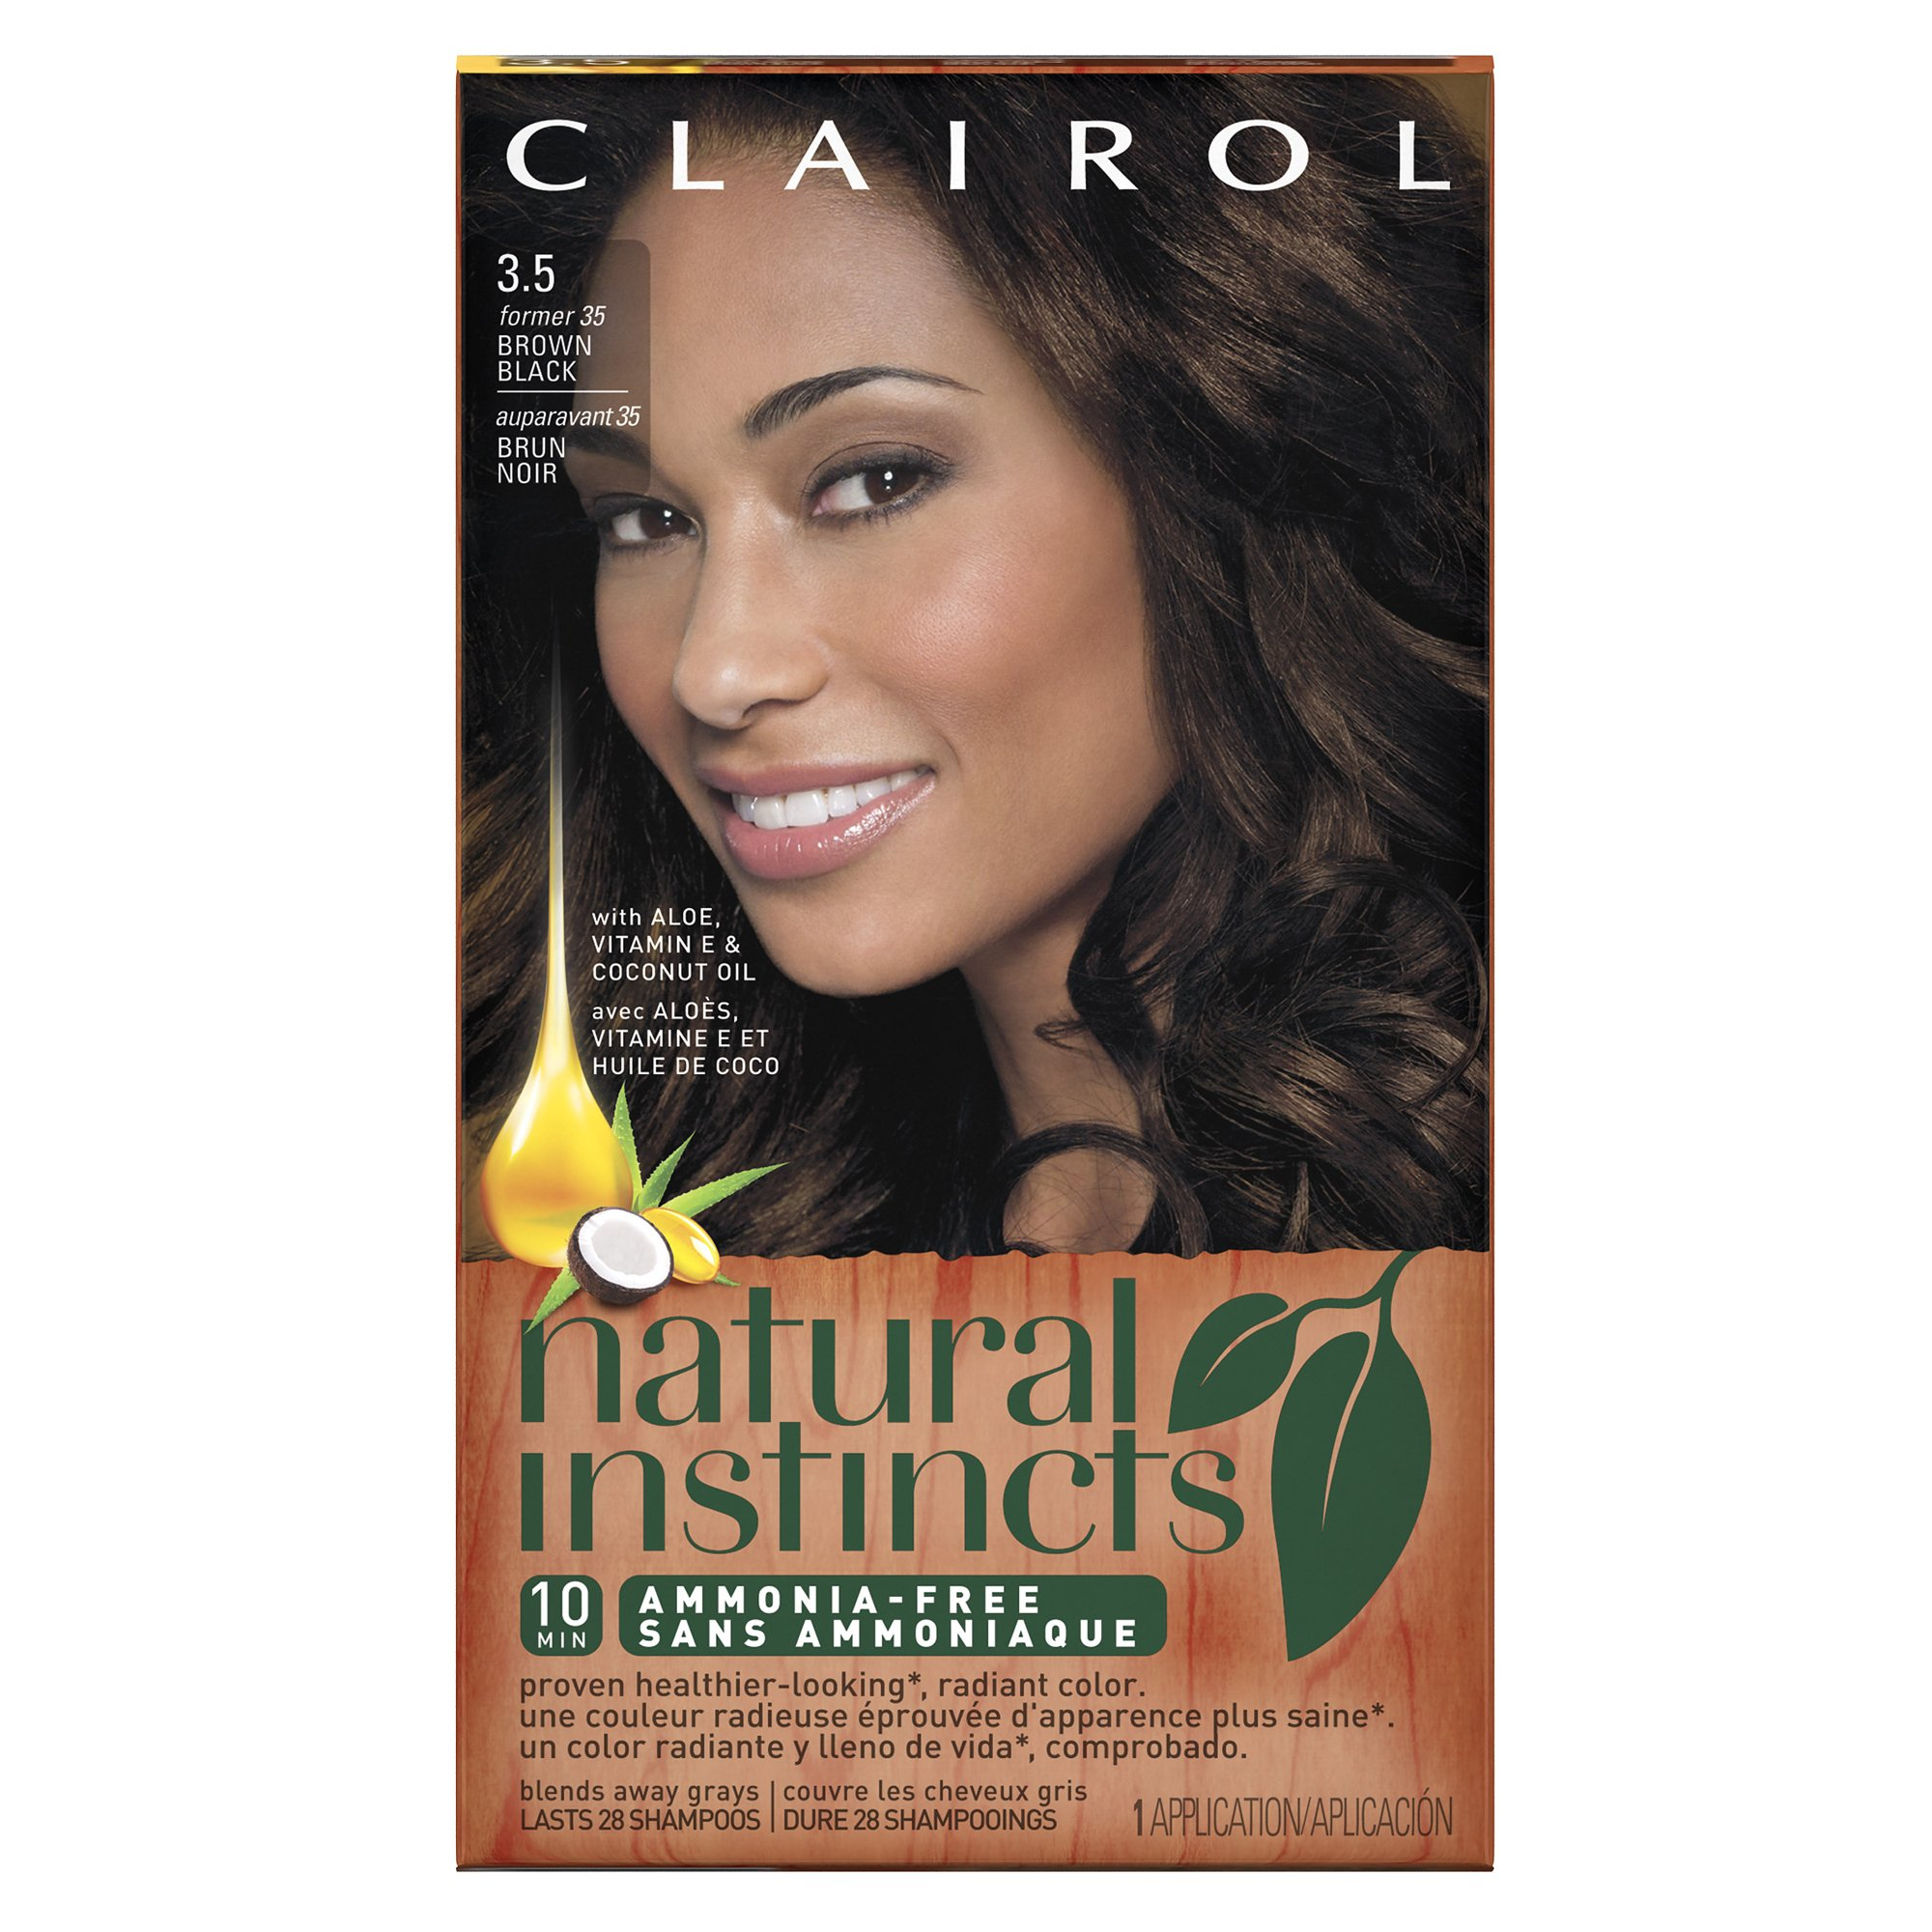 Clairol Natural Instincts, 3.5 / 35 Ebony Mocha Brown Black, Semi-Permanent  Hair